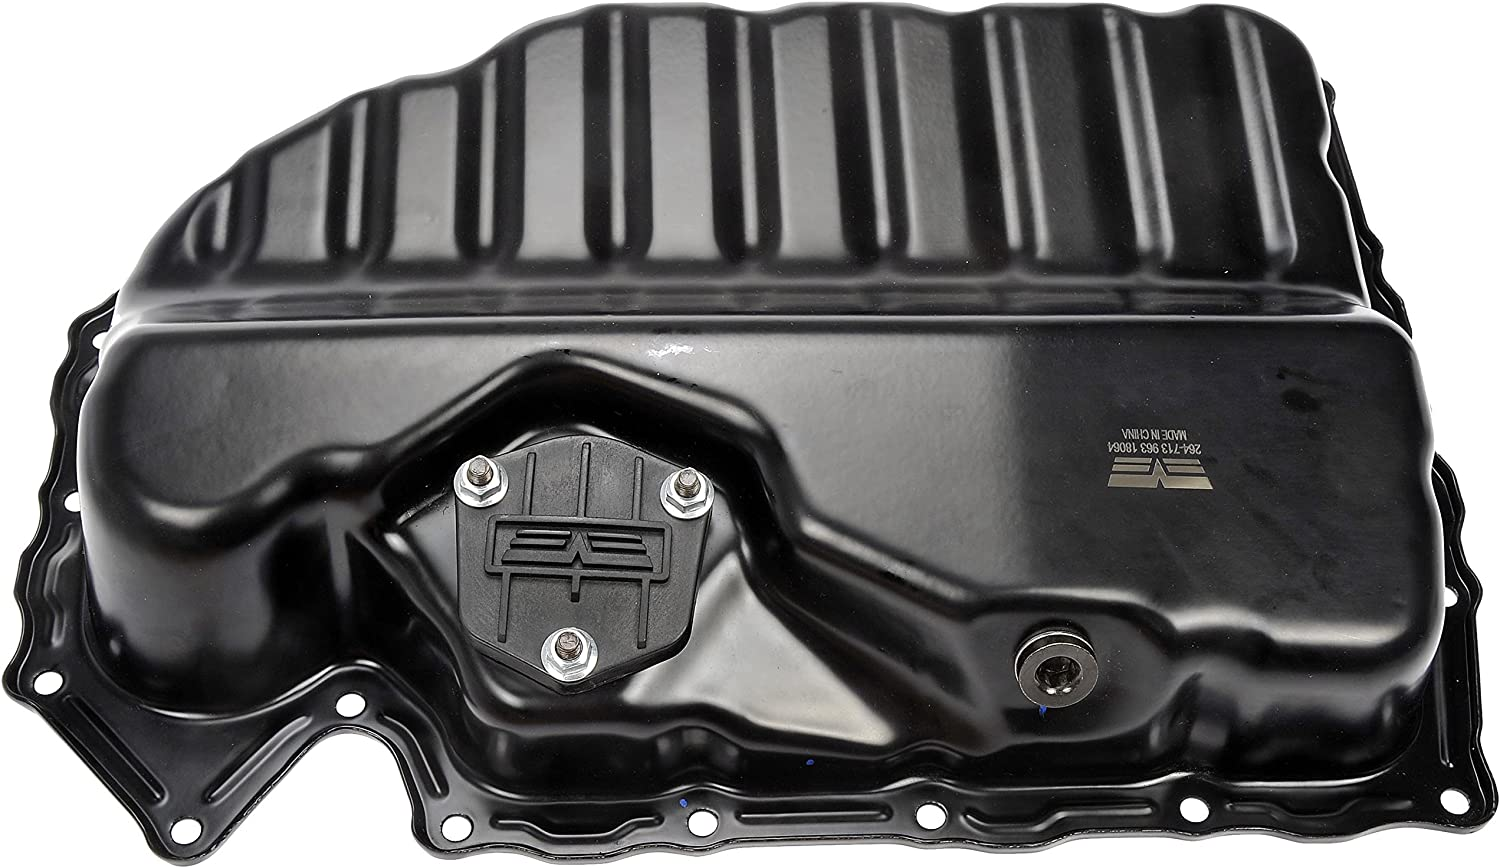 Engine Oil Sump Plate Spectra OPA001